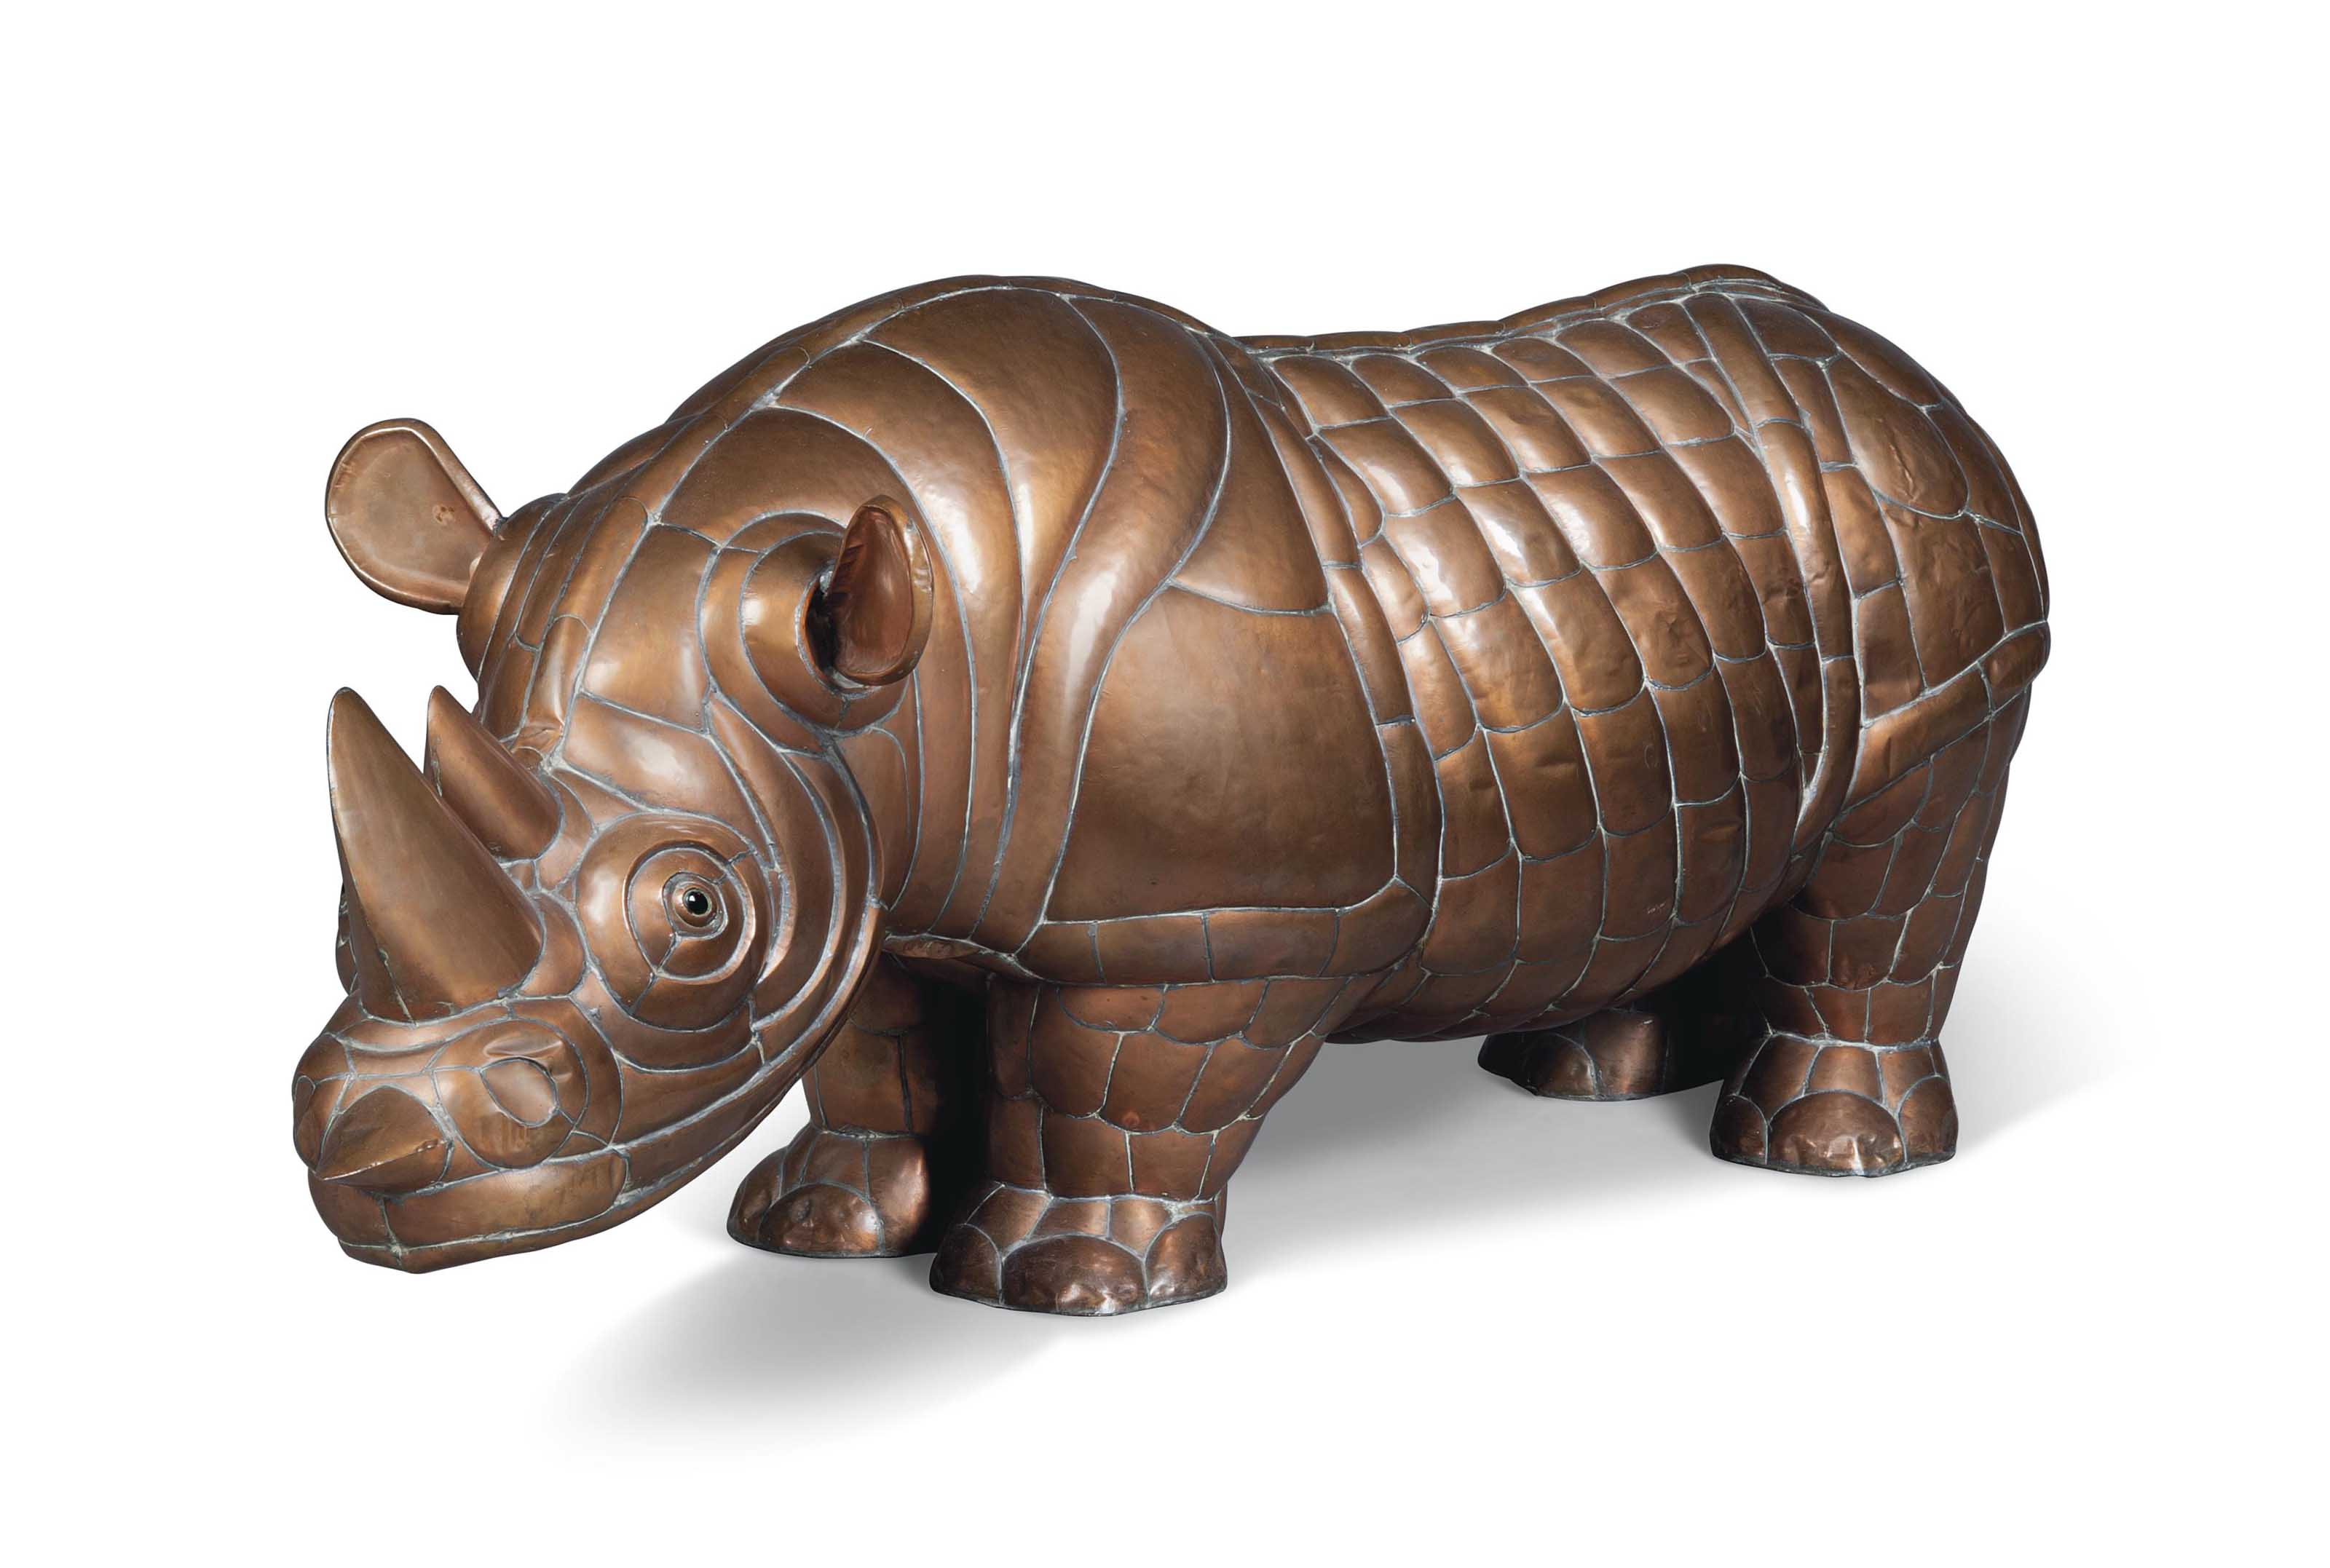 A COPPER MODEL OF A RHINOCEROS